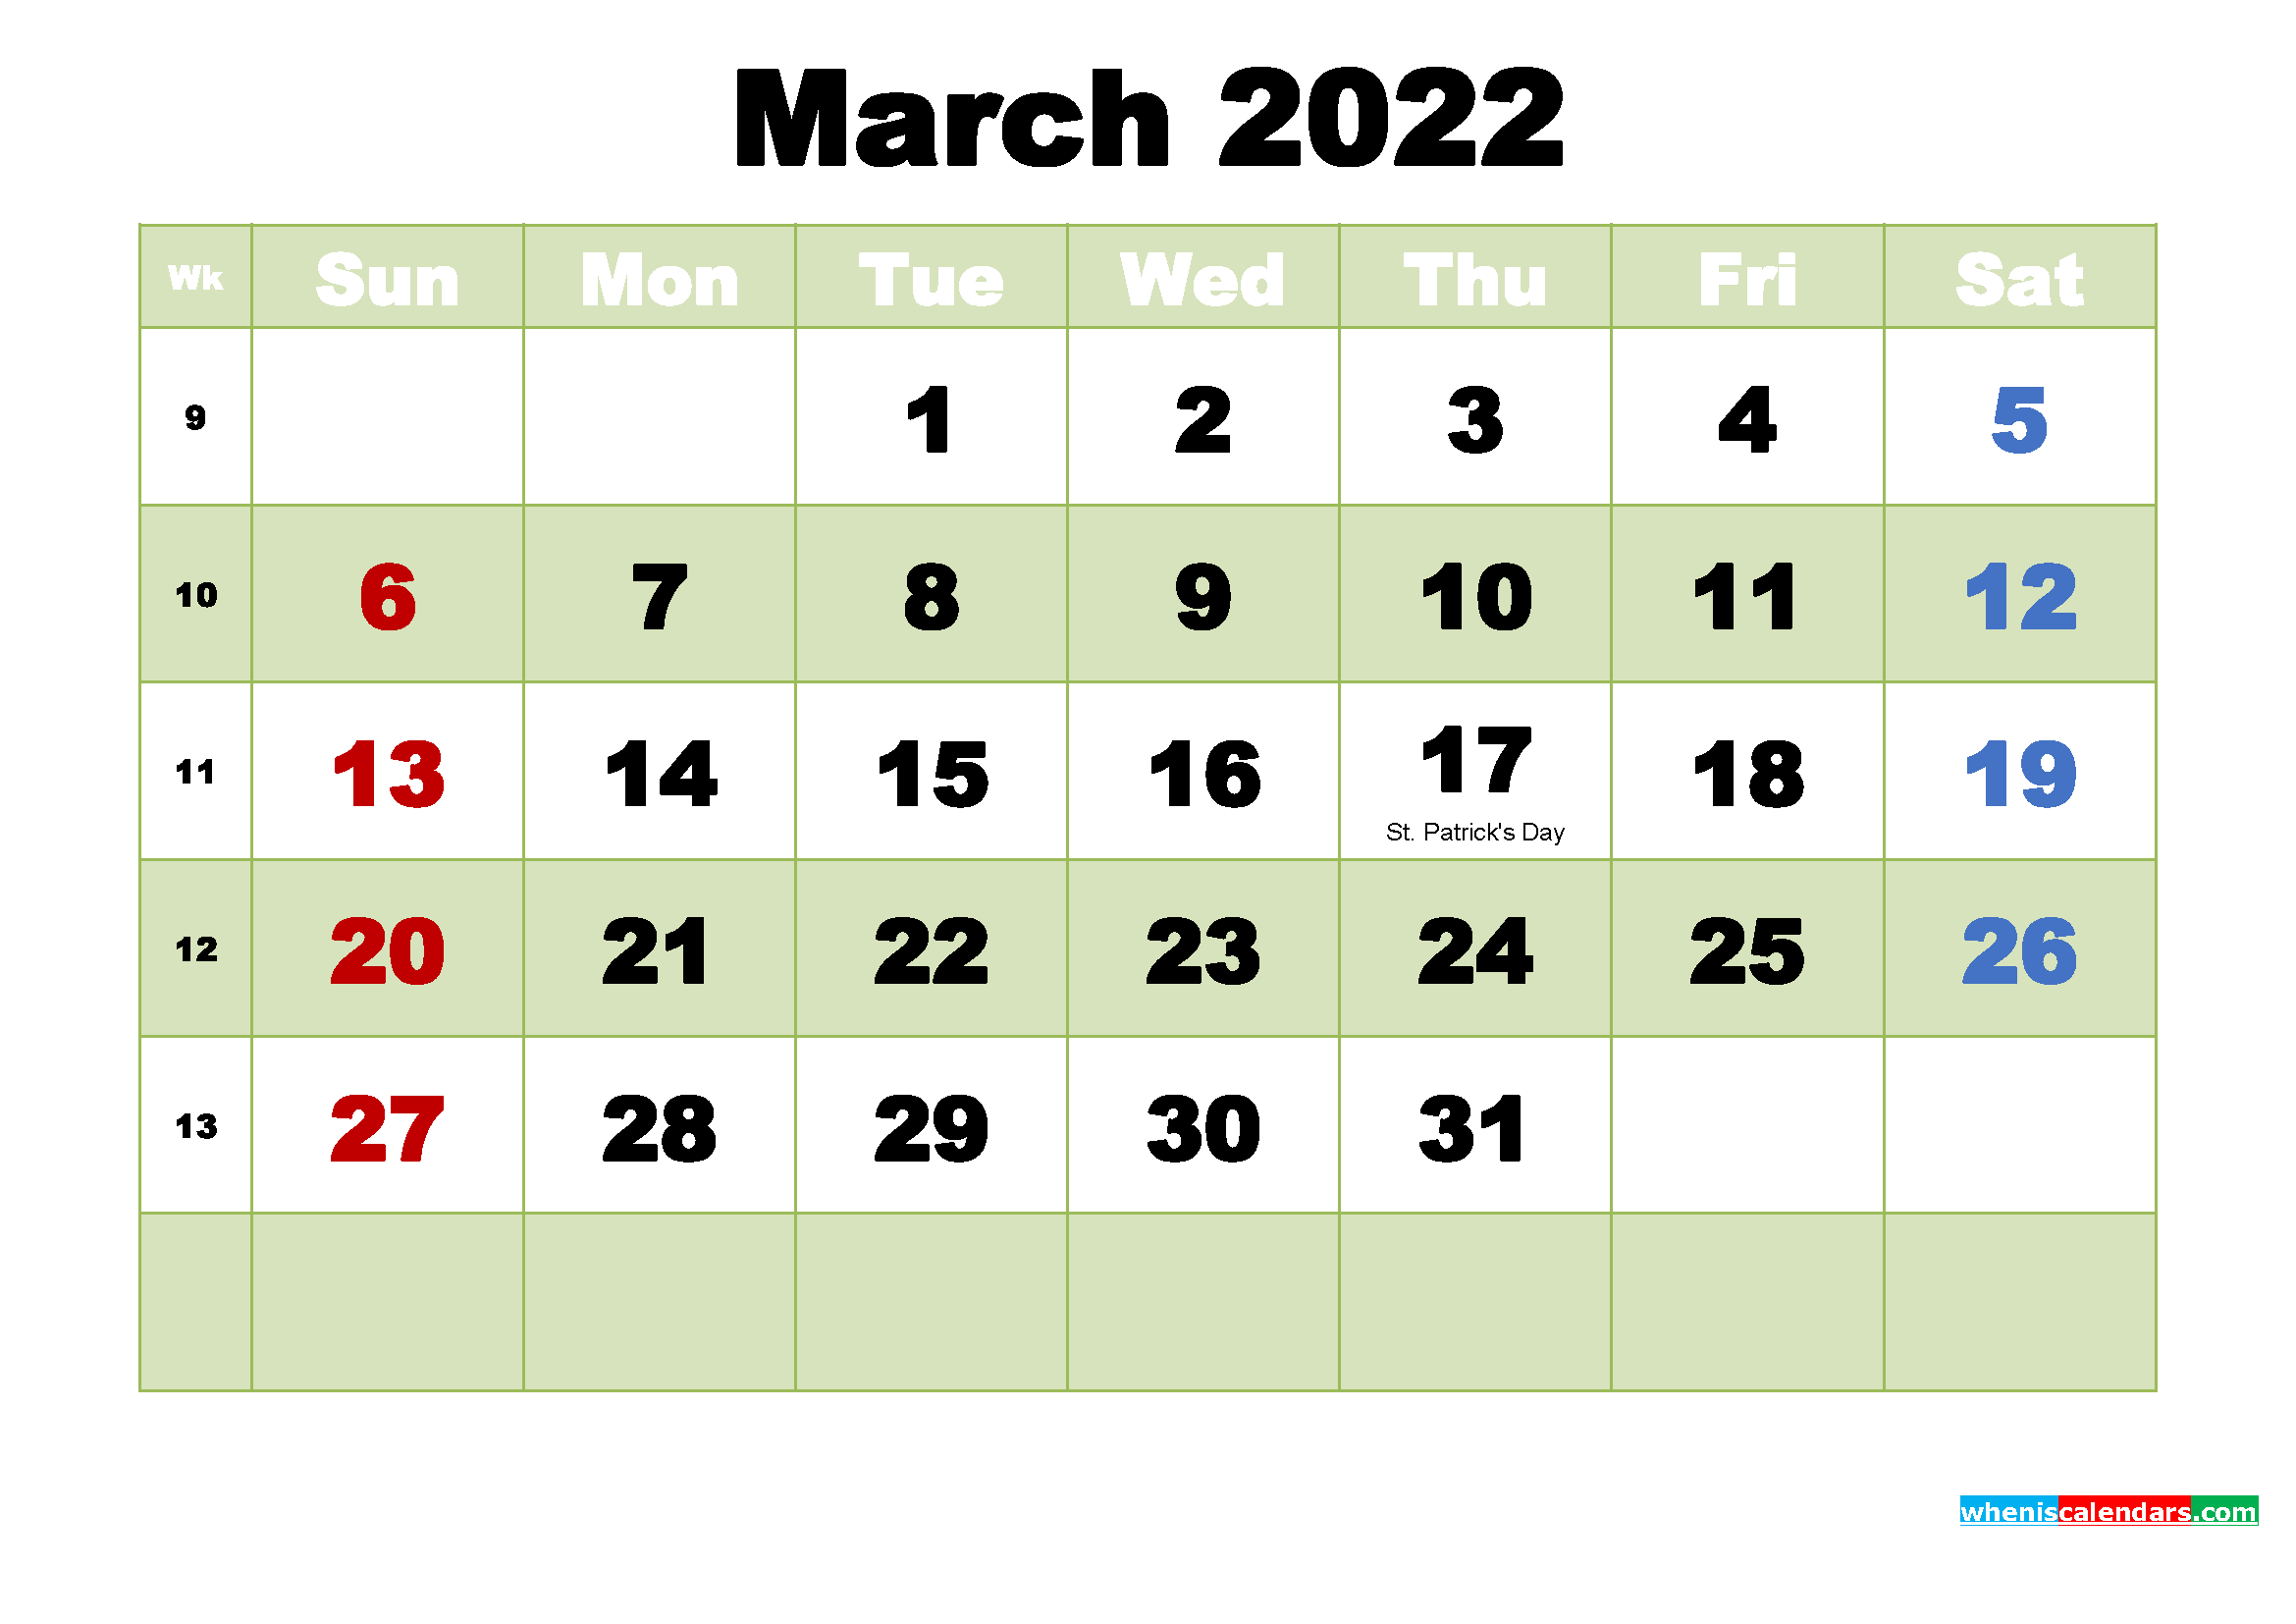 Printable Calendar for March 2022